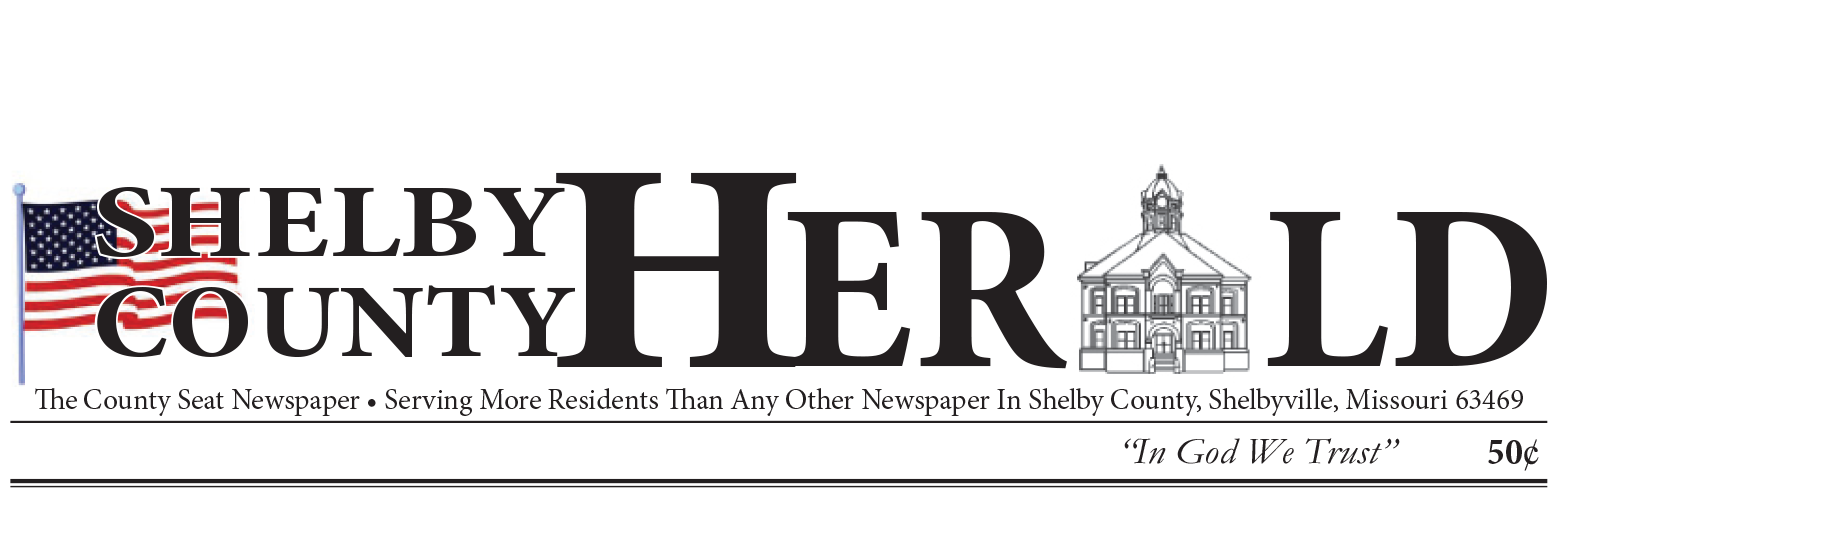 Shelby County Herald